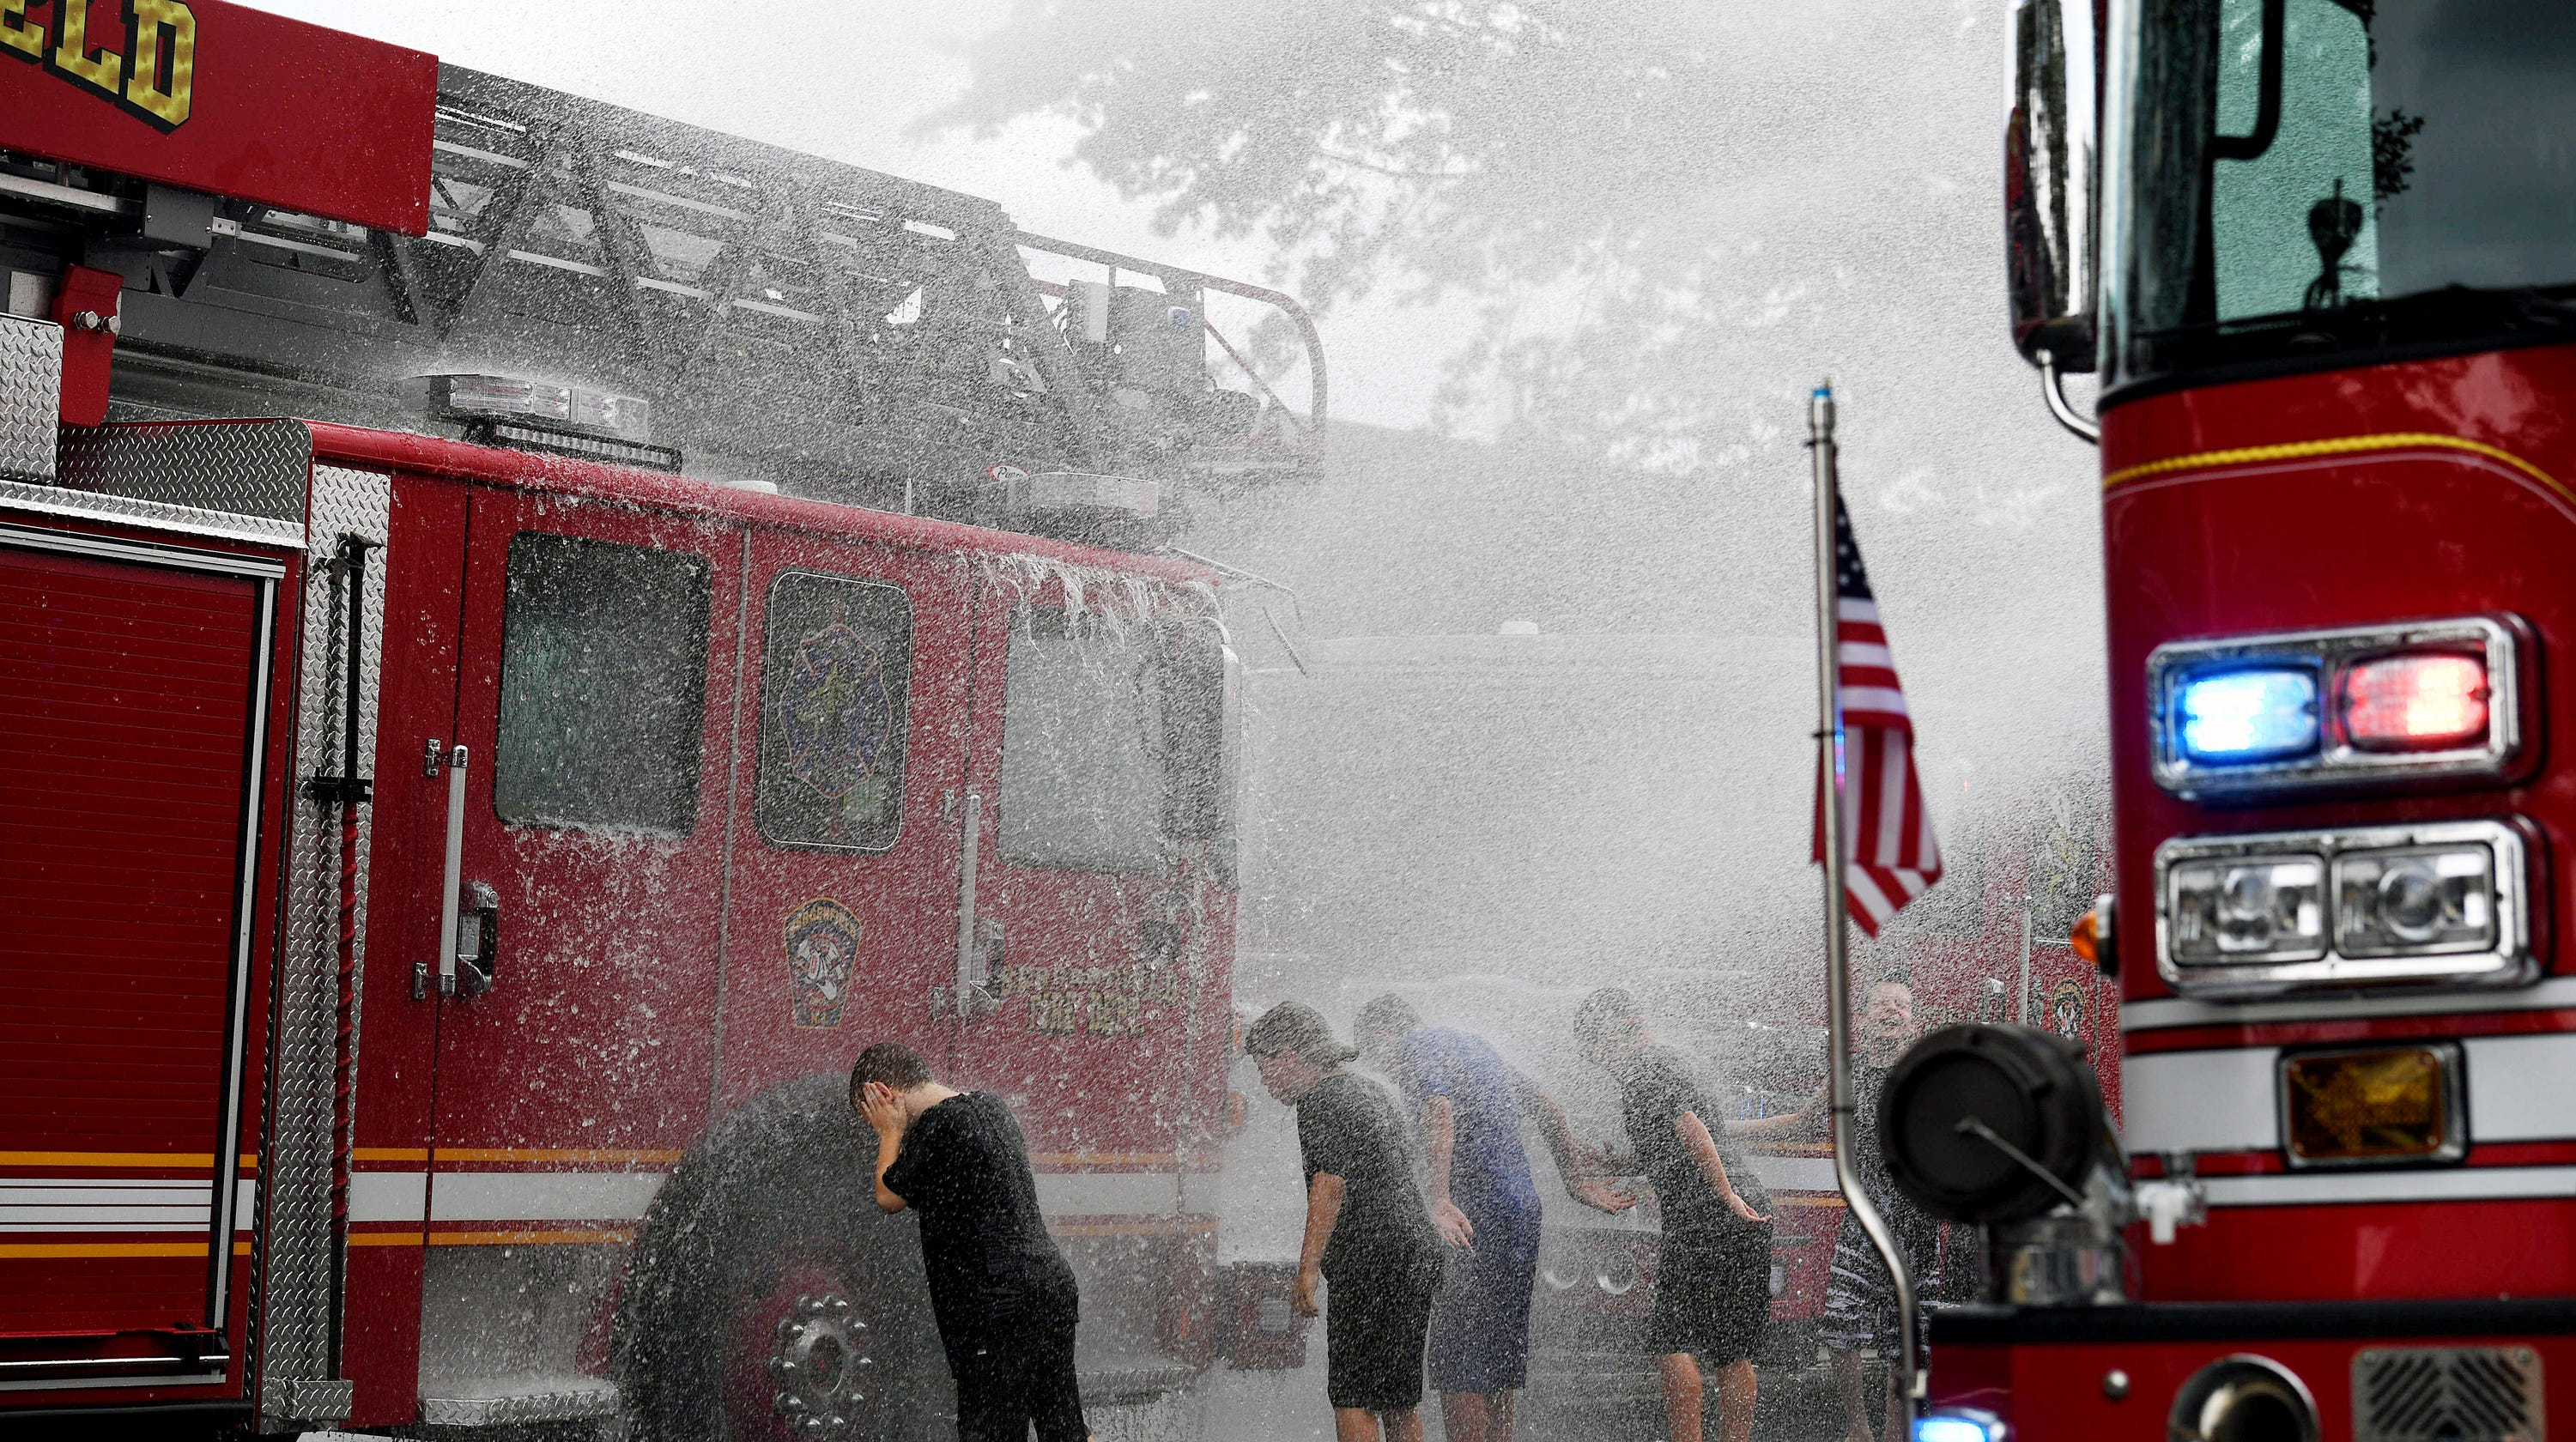 Bergenfield NJ interested in firetruck donation, awaiting